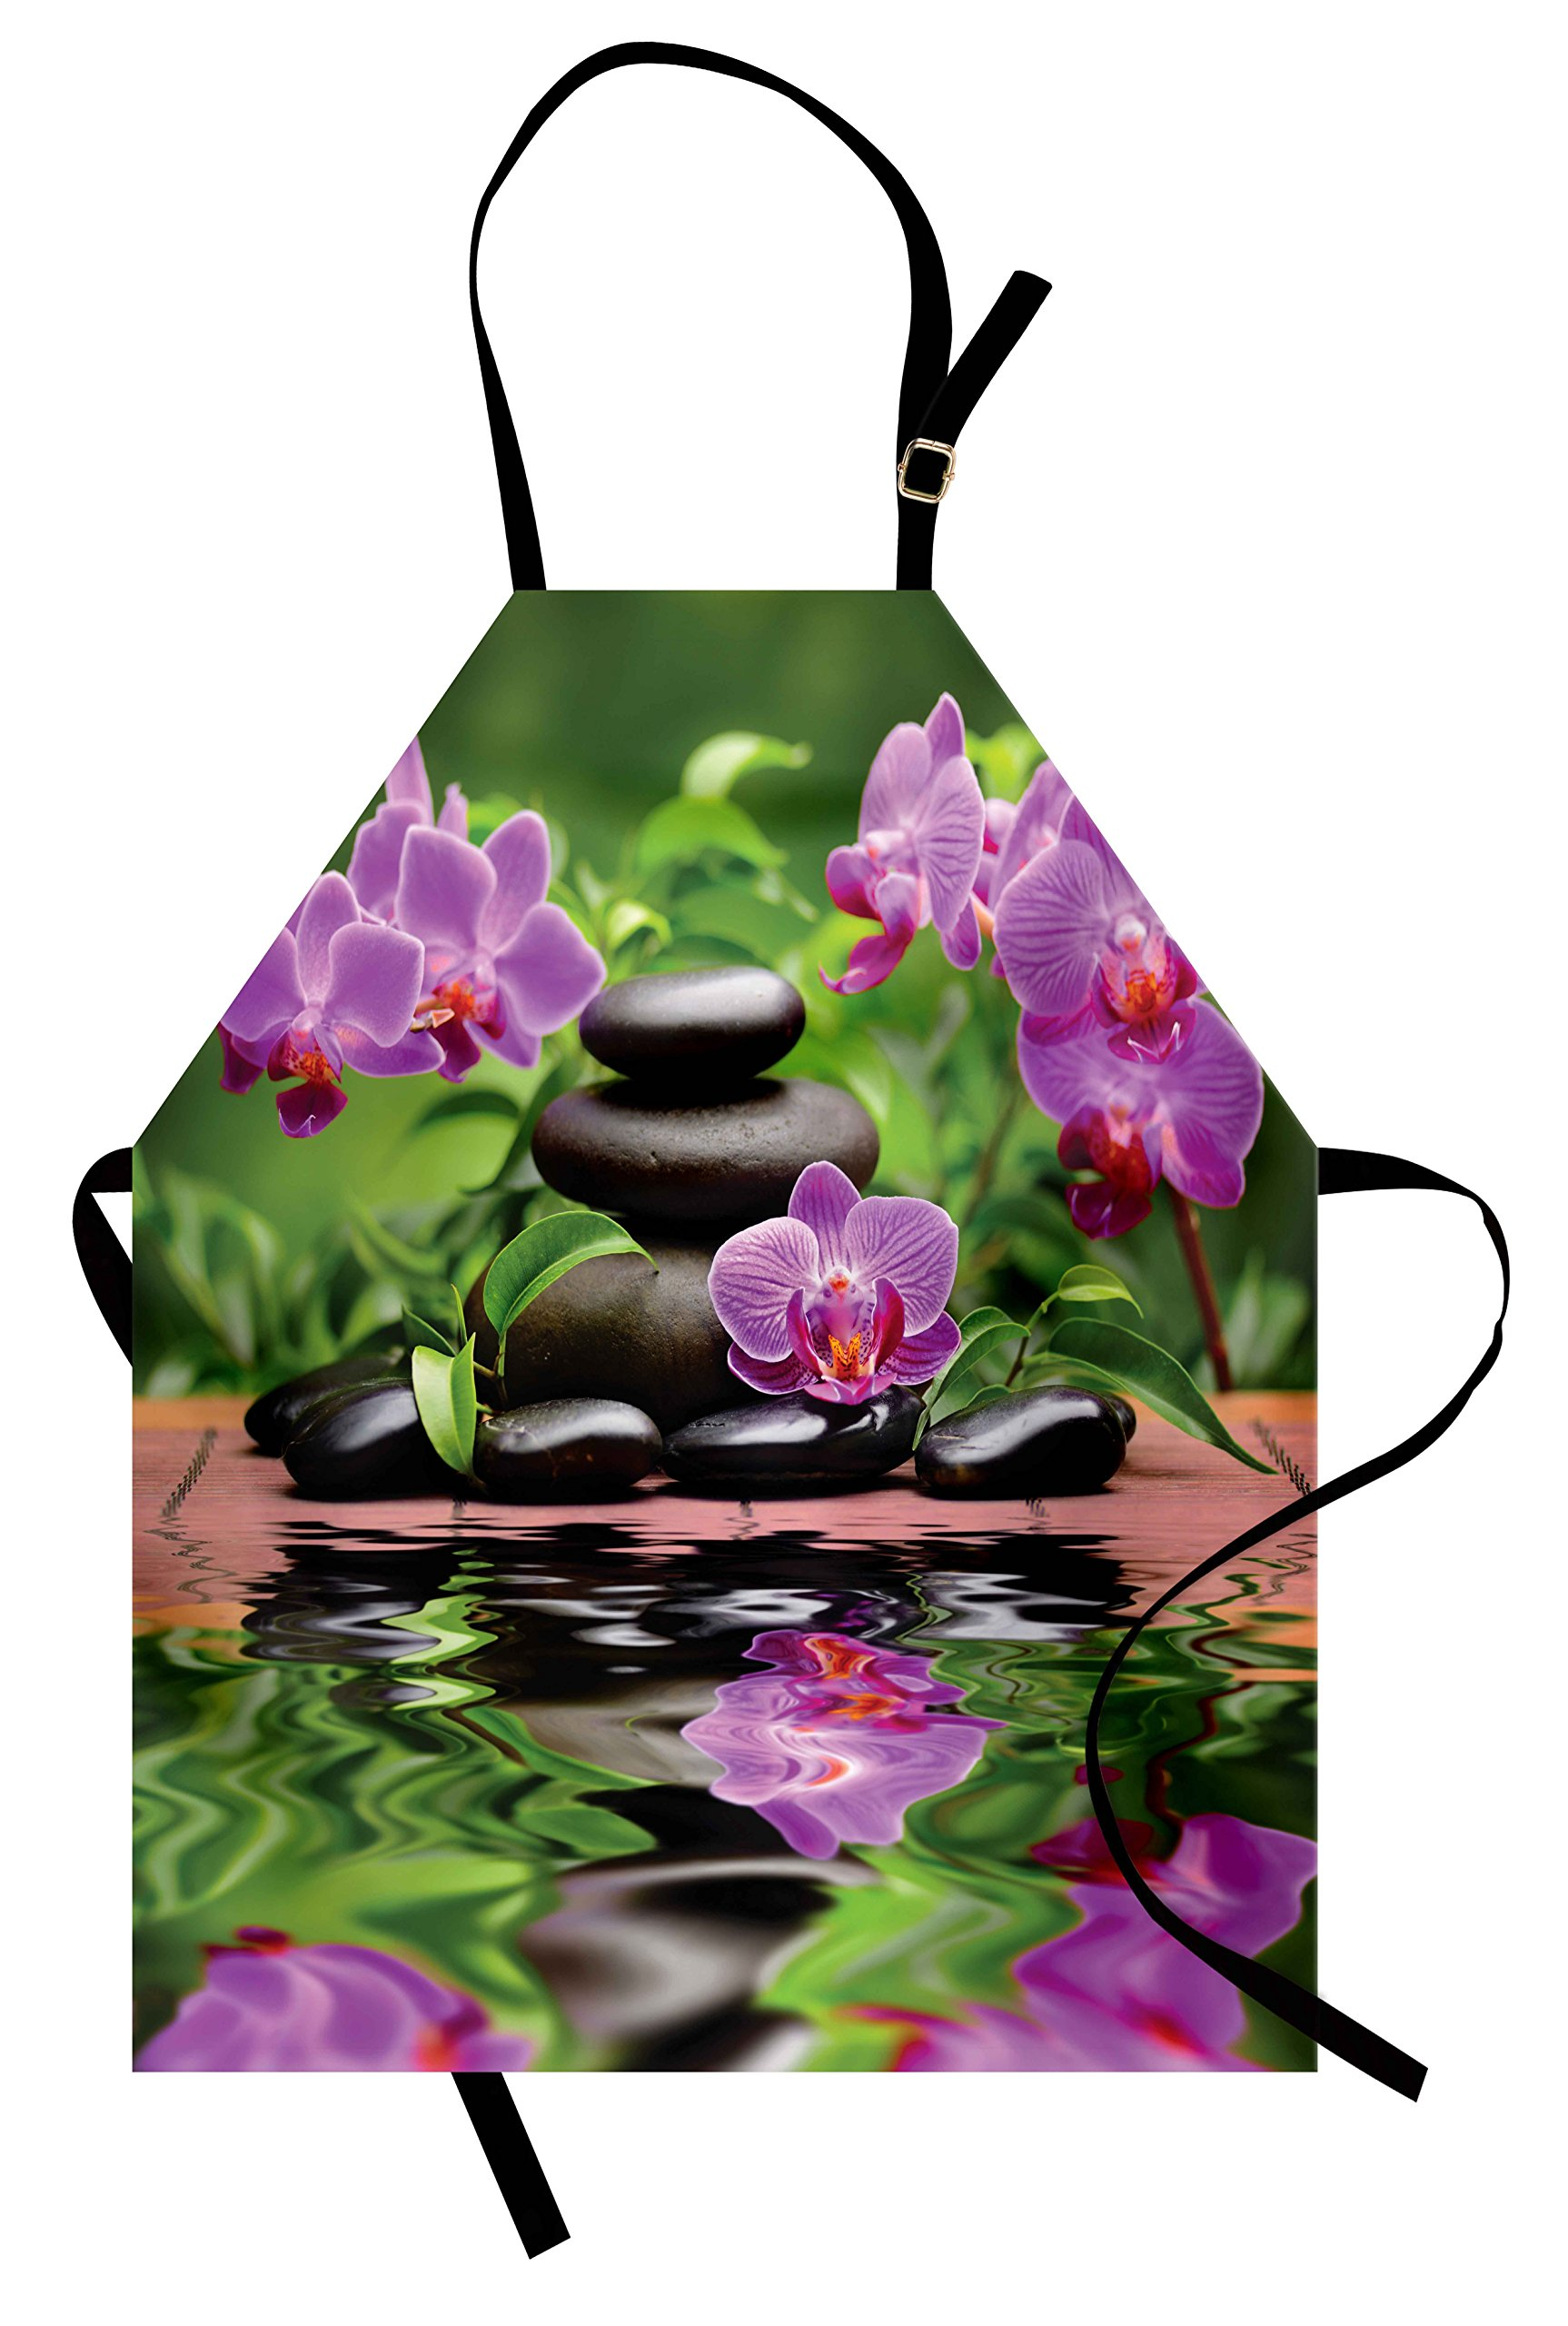 Lunarable Spa Apron, Zen Basalt Stones and Orchid Reflecting on Water Greenery Wellbeing Tropical, Unisex Kitchen Bib Apron with Adjustable Neck for Cooking Baking Gardening, Fren Green Lavander by Lunarable (Image #1)